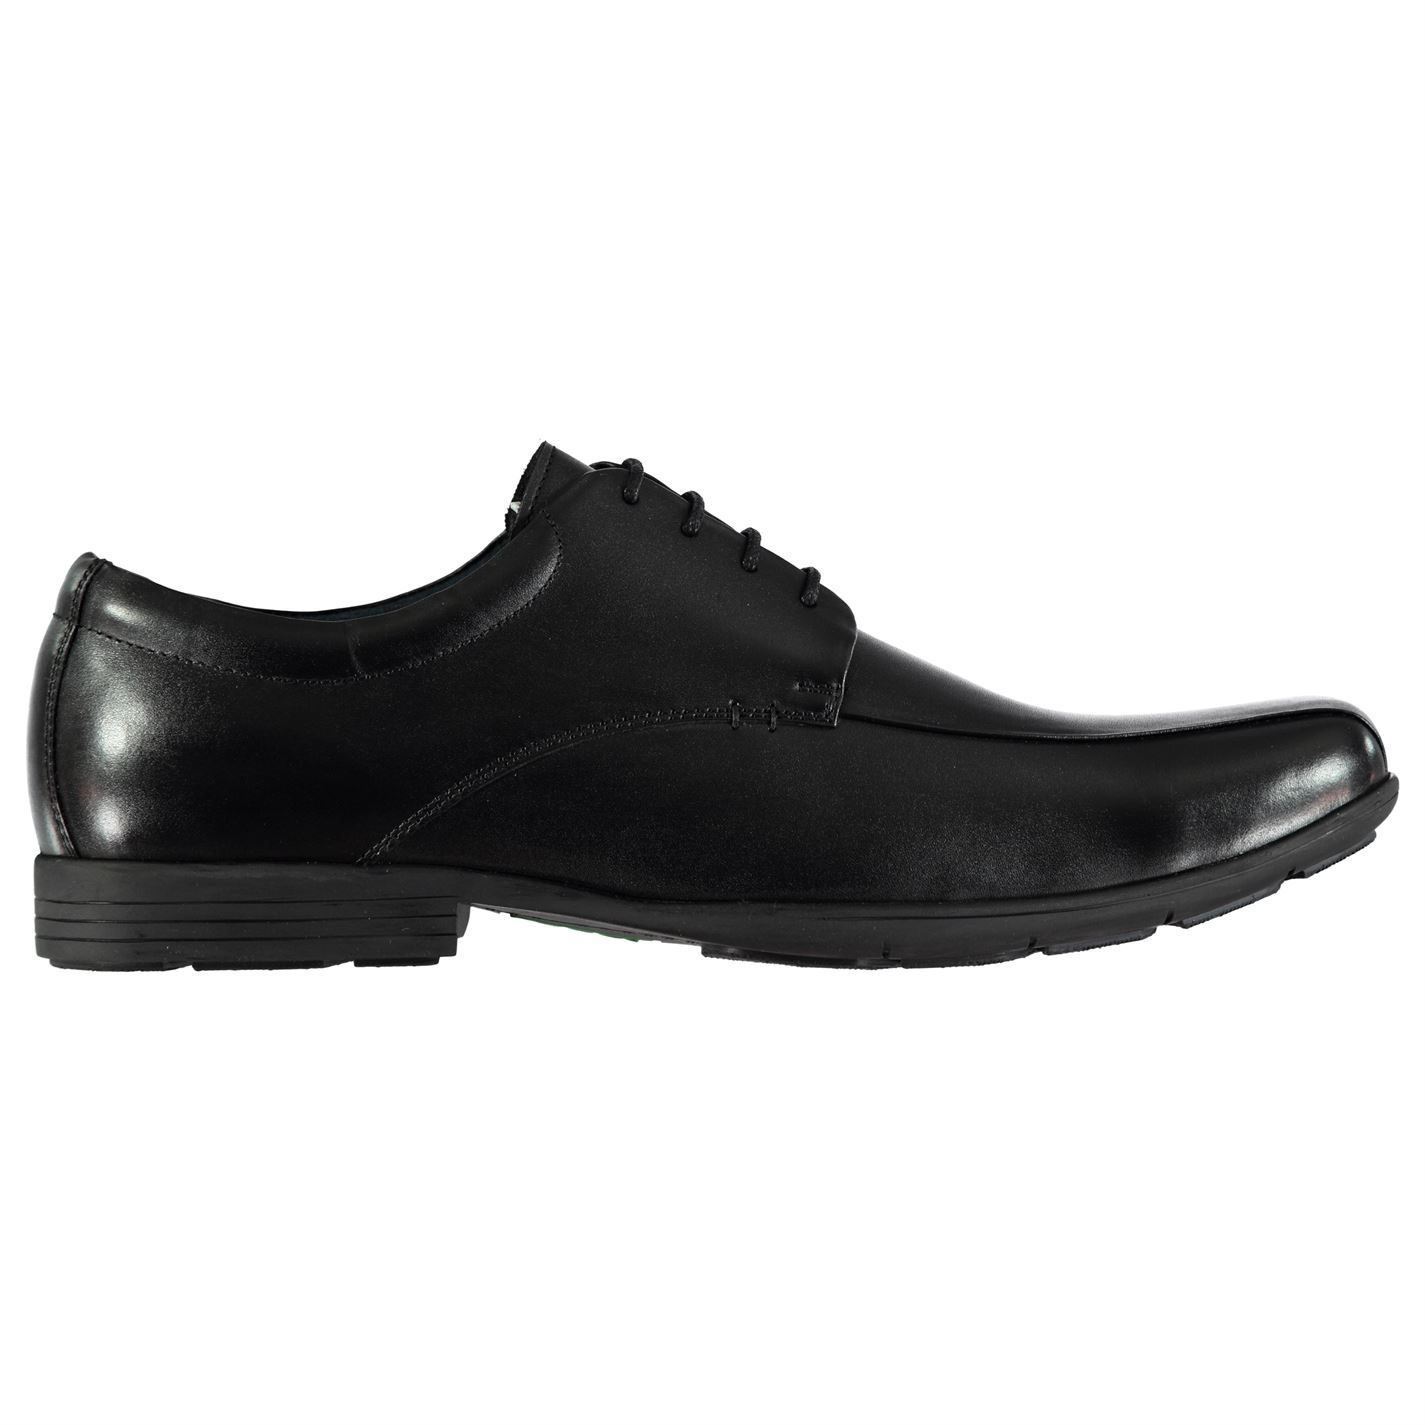 POD Wessex Schuhe Gents 74  Uomo Gents Schuhe Boat Schuhes 12243f